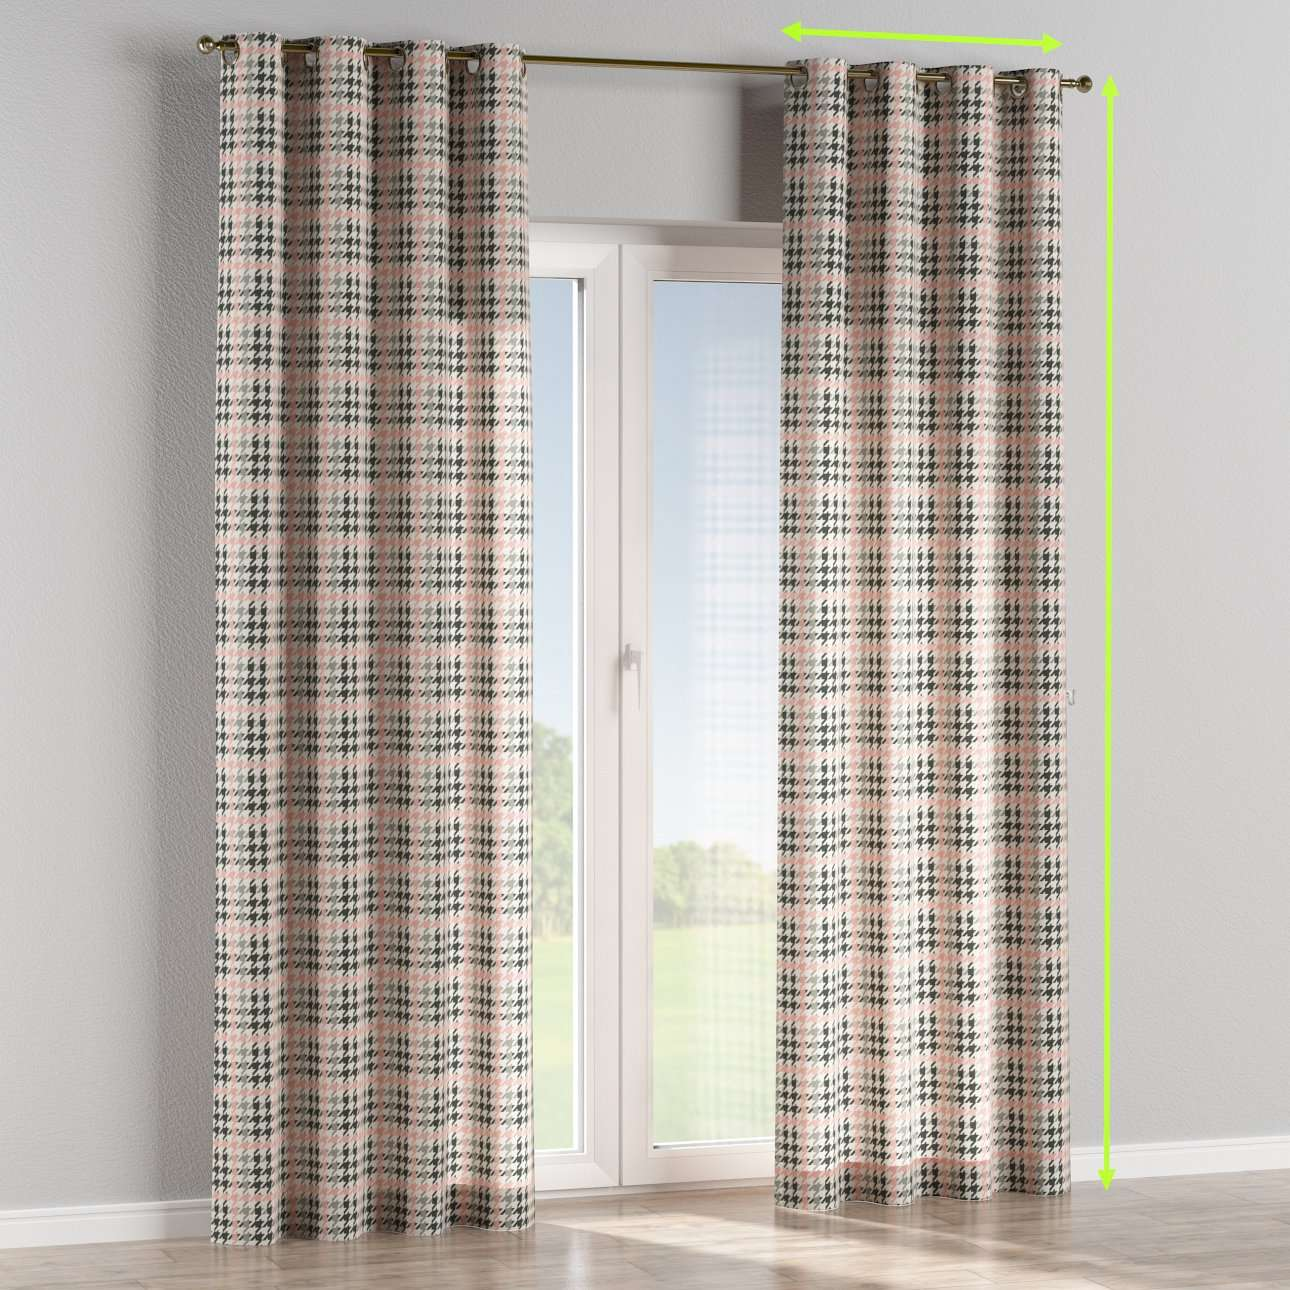 Eyelet curtain in collection SALE, fabric: 137-75